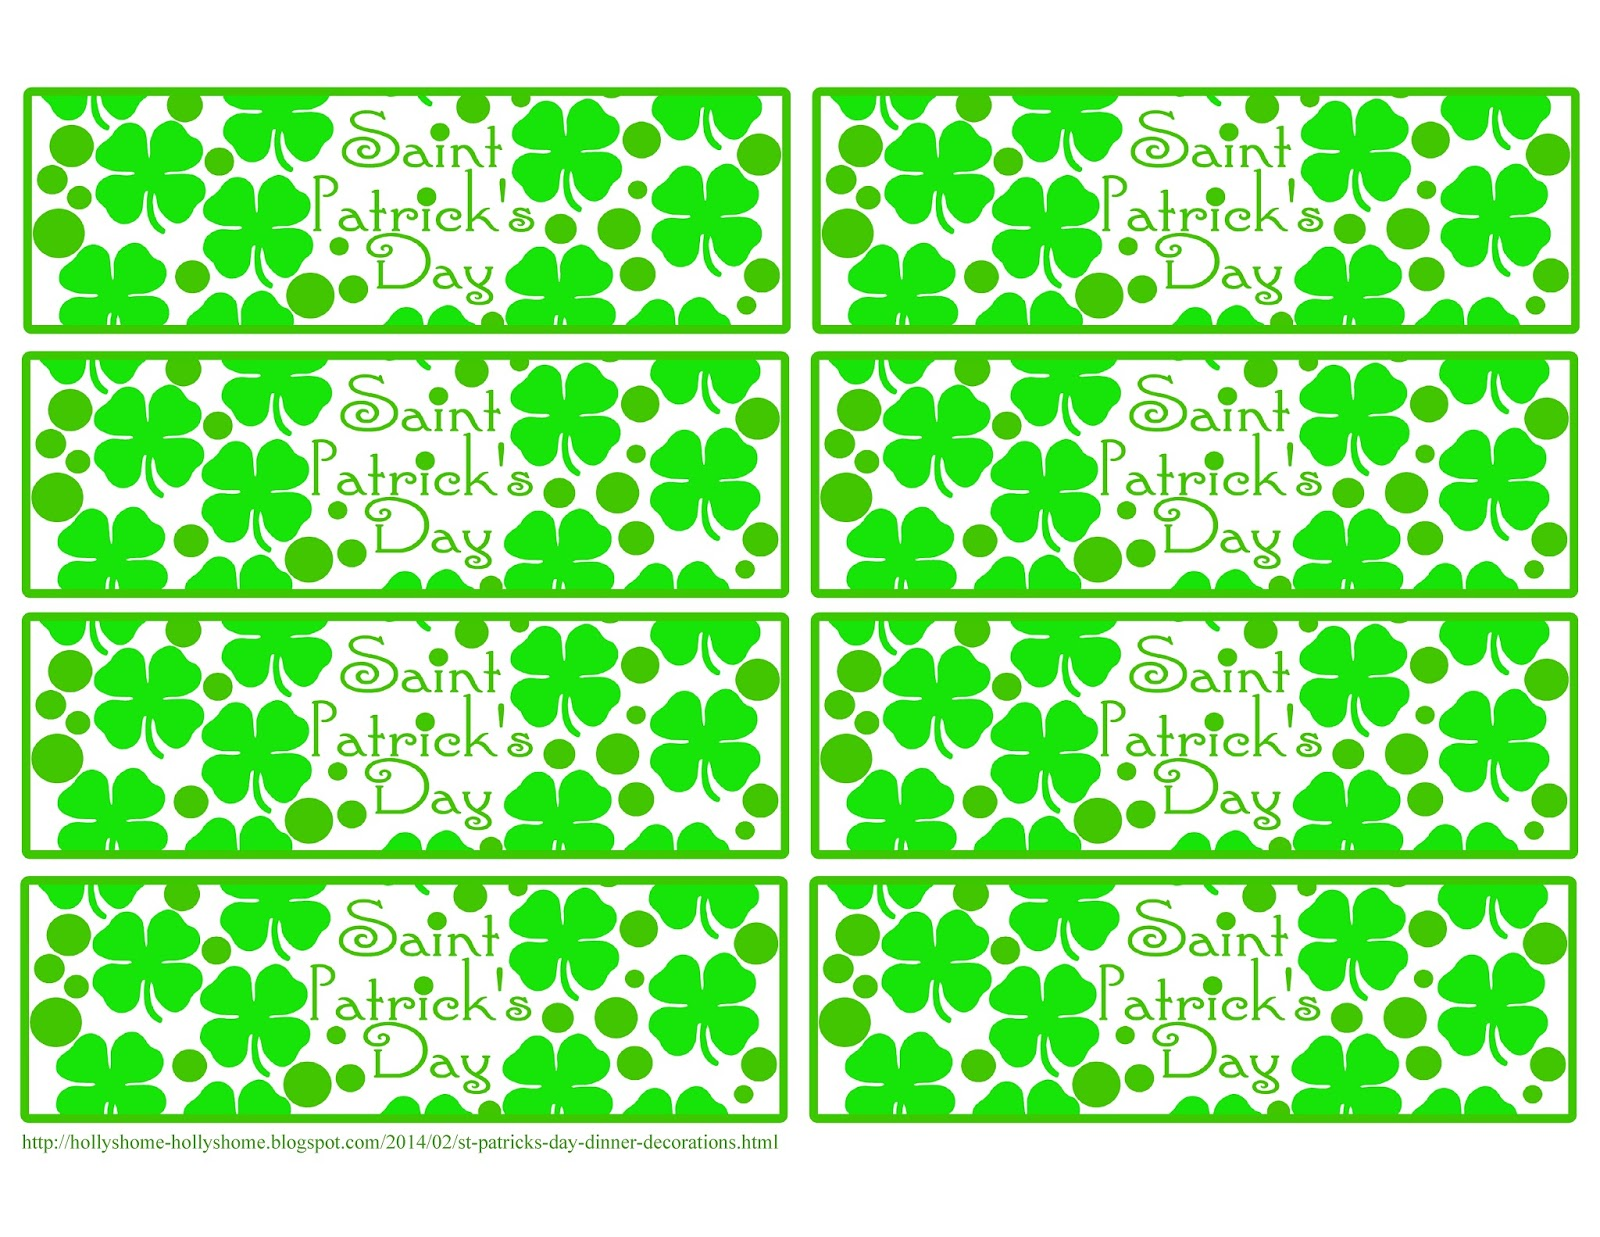 photo about St Patrick's Day Cards Free Printable identified as HollysHome Family members Lifestyle: St. Patricks Working day Evening meal Totally free